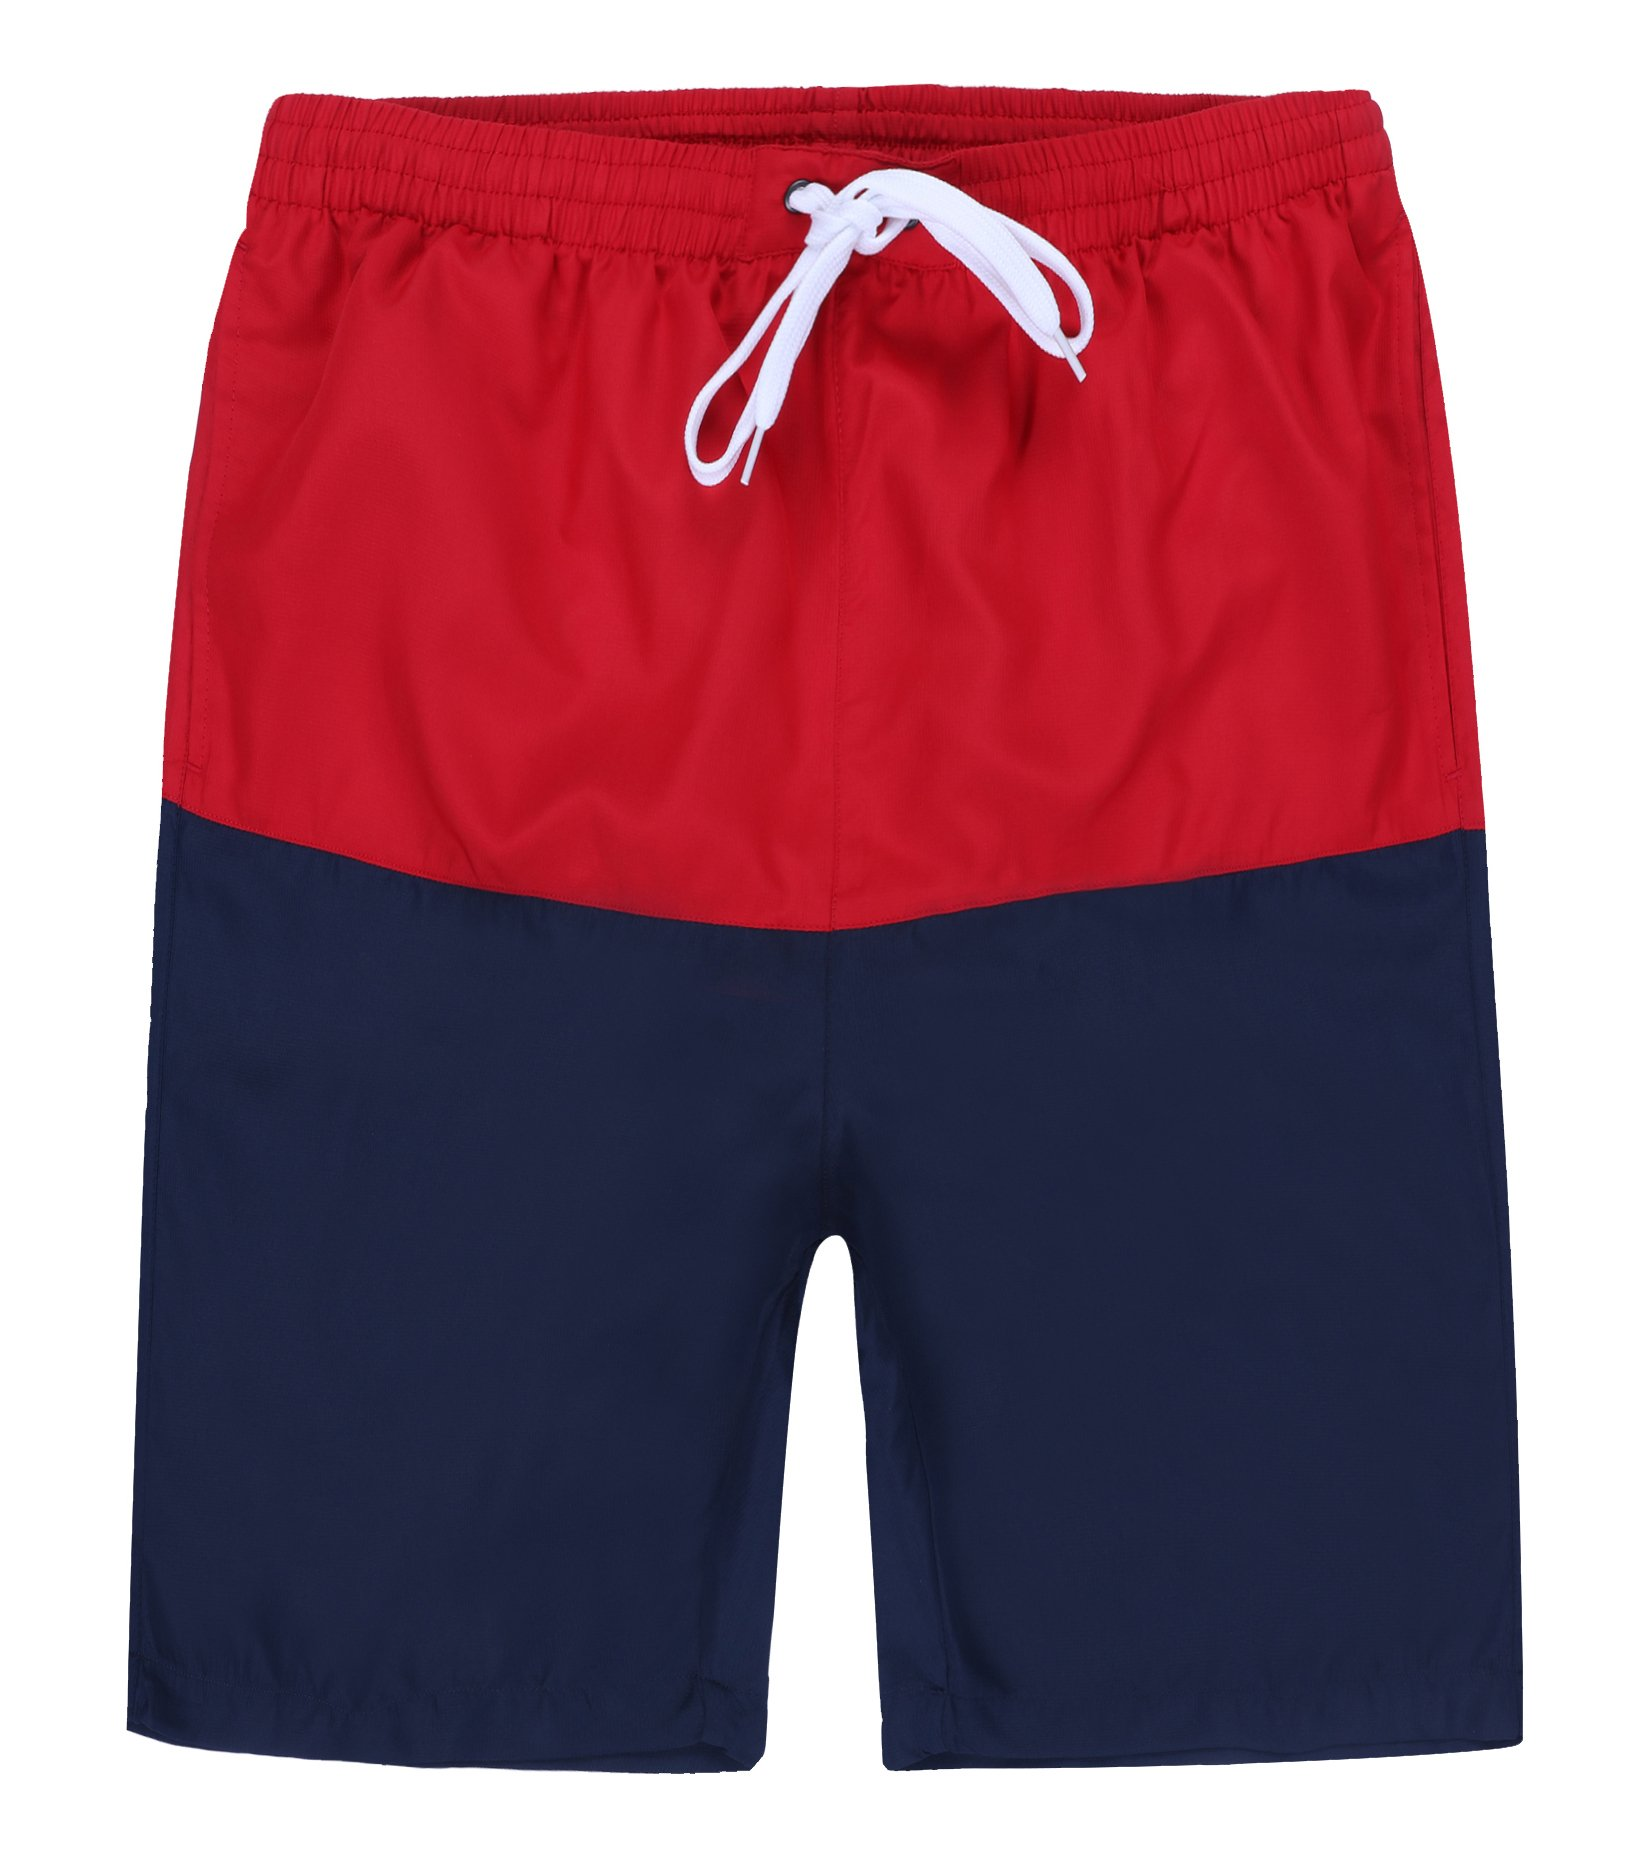 Dwar Men's Beachwear Board Shorts Quick Dry with Mesh Lining Swim Trunks (Medium, Red and Navy)